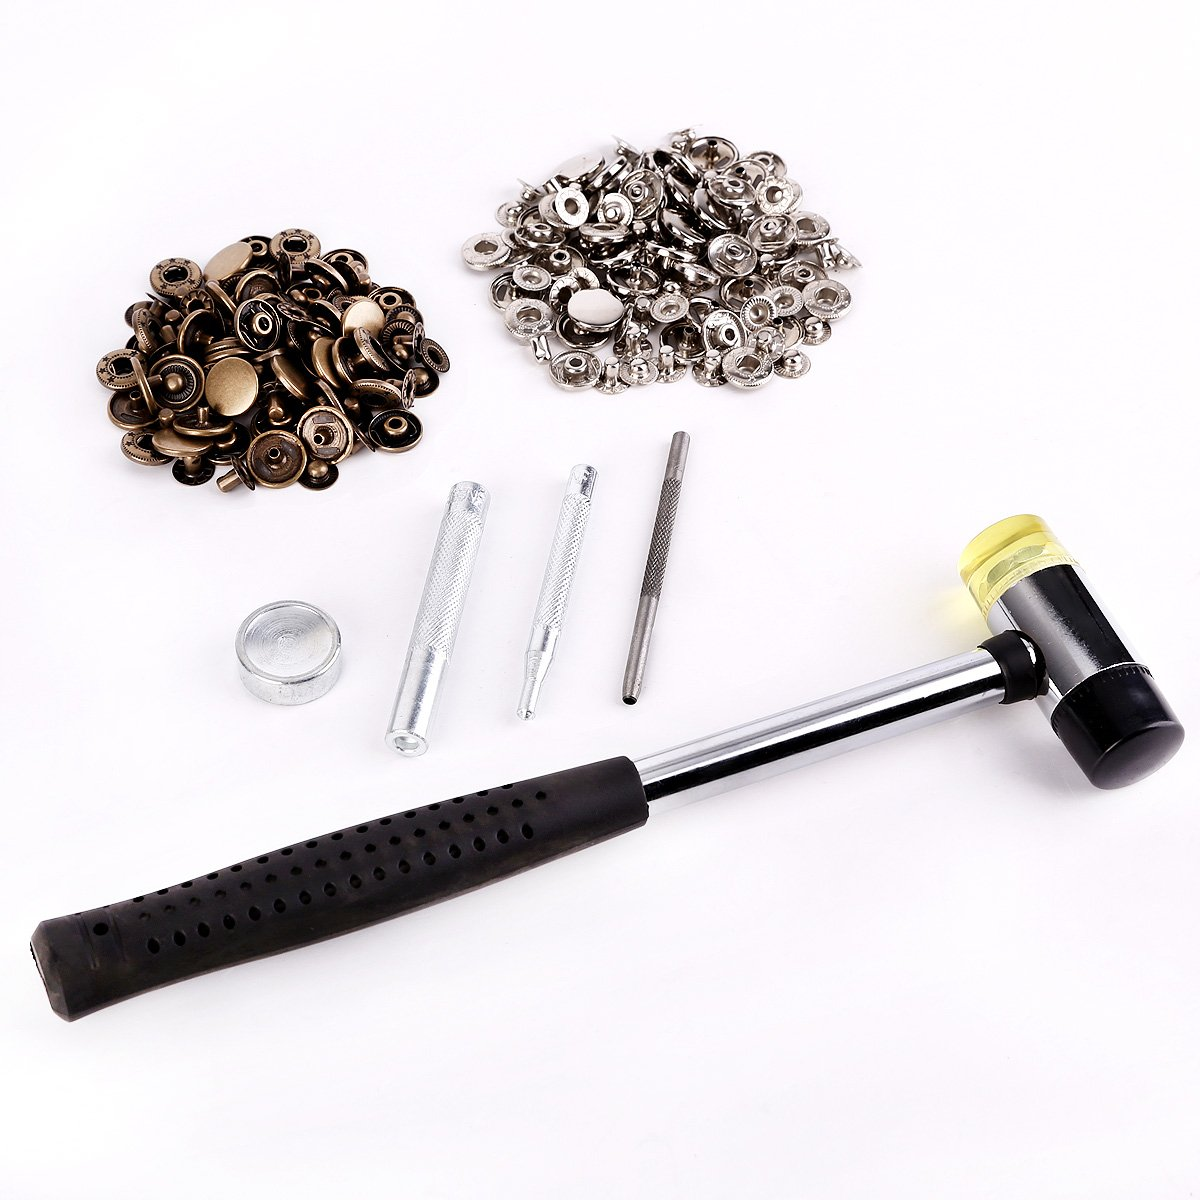 60 Metal Poppers Snap Clasp Fasteners Press Stud Kit Leather Craft Jacket Button 15mm Silver Bronze